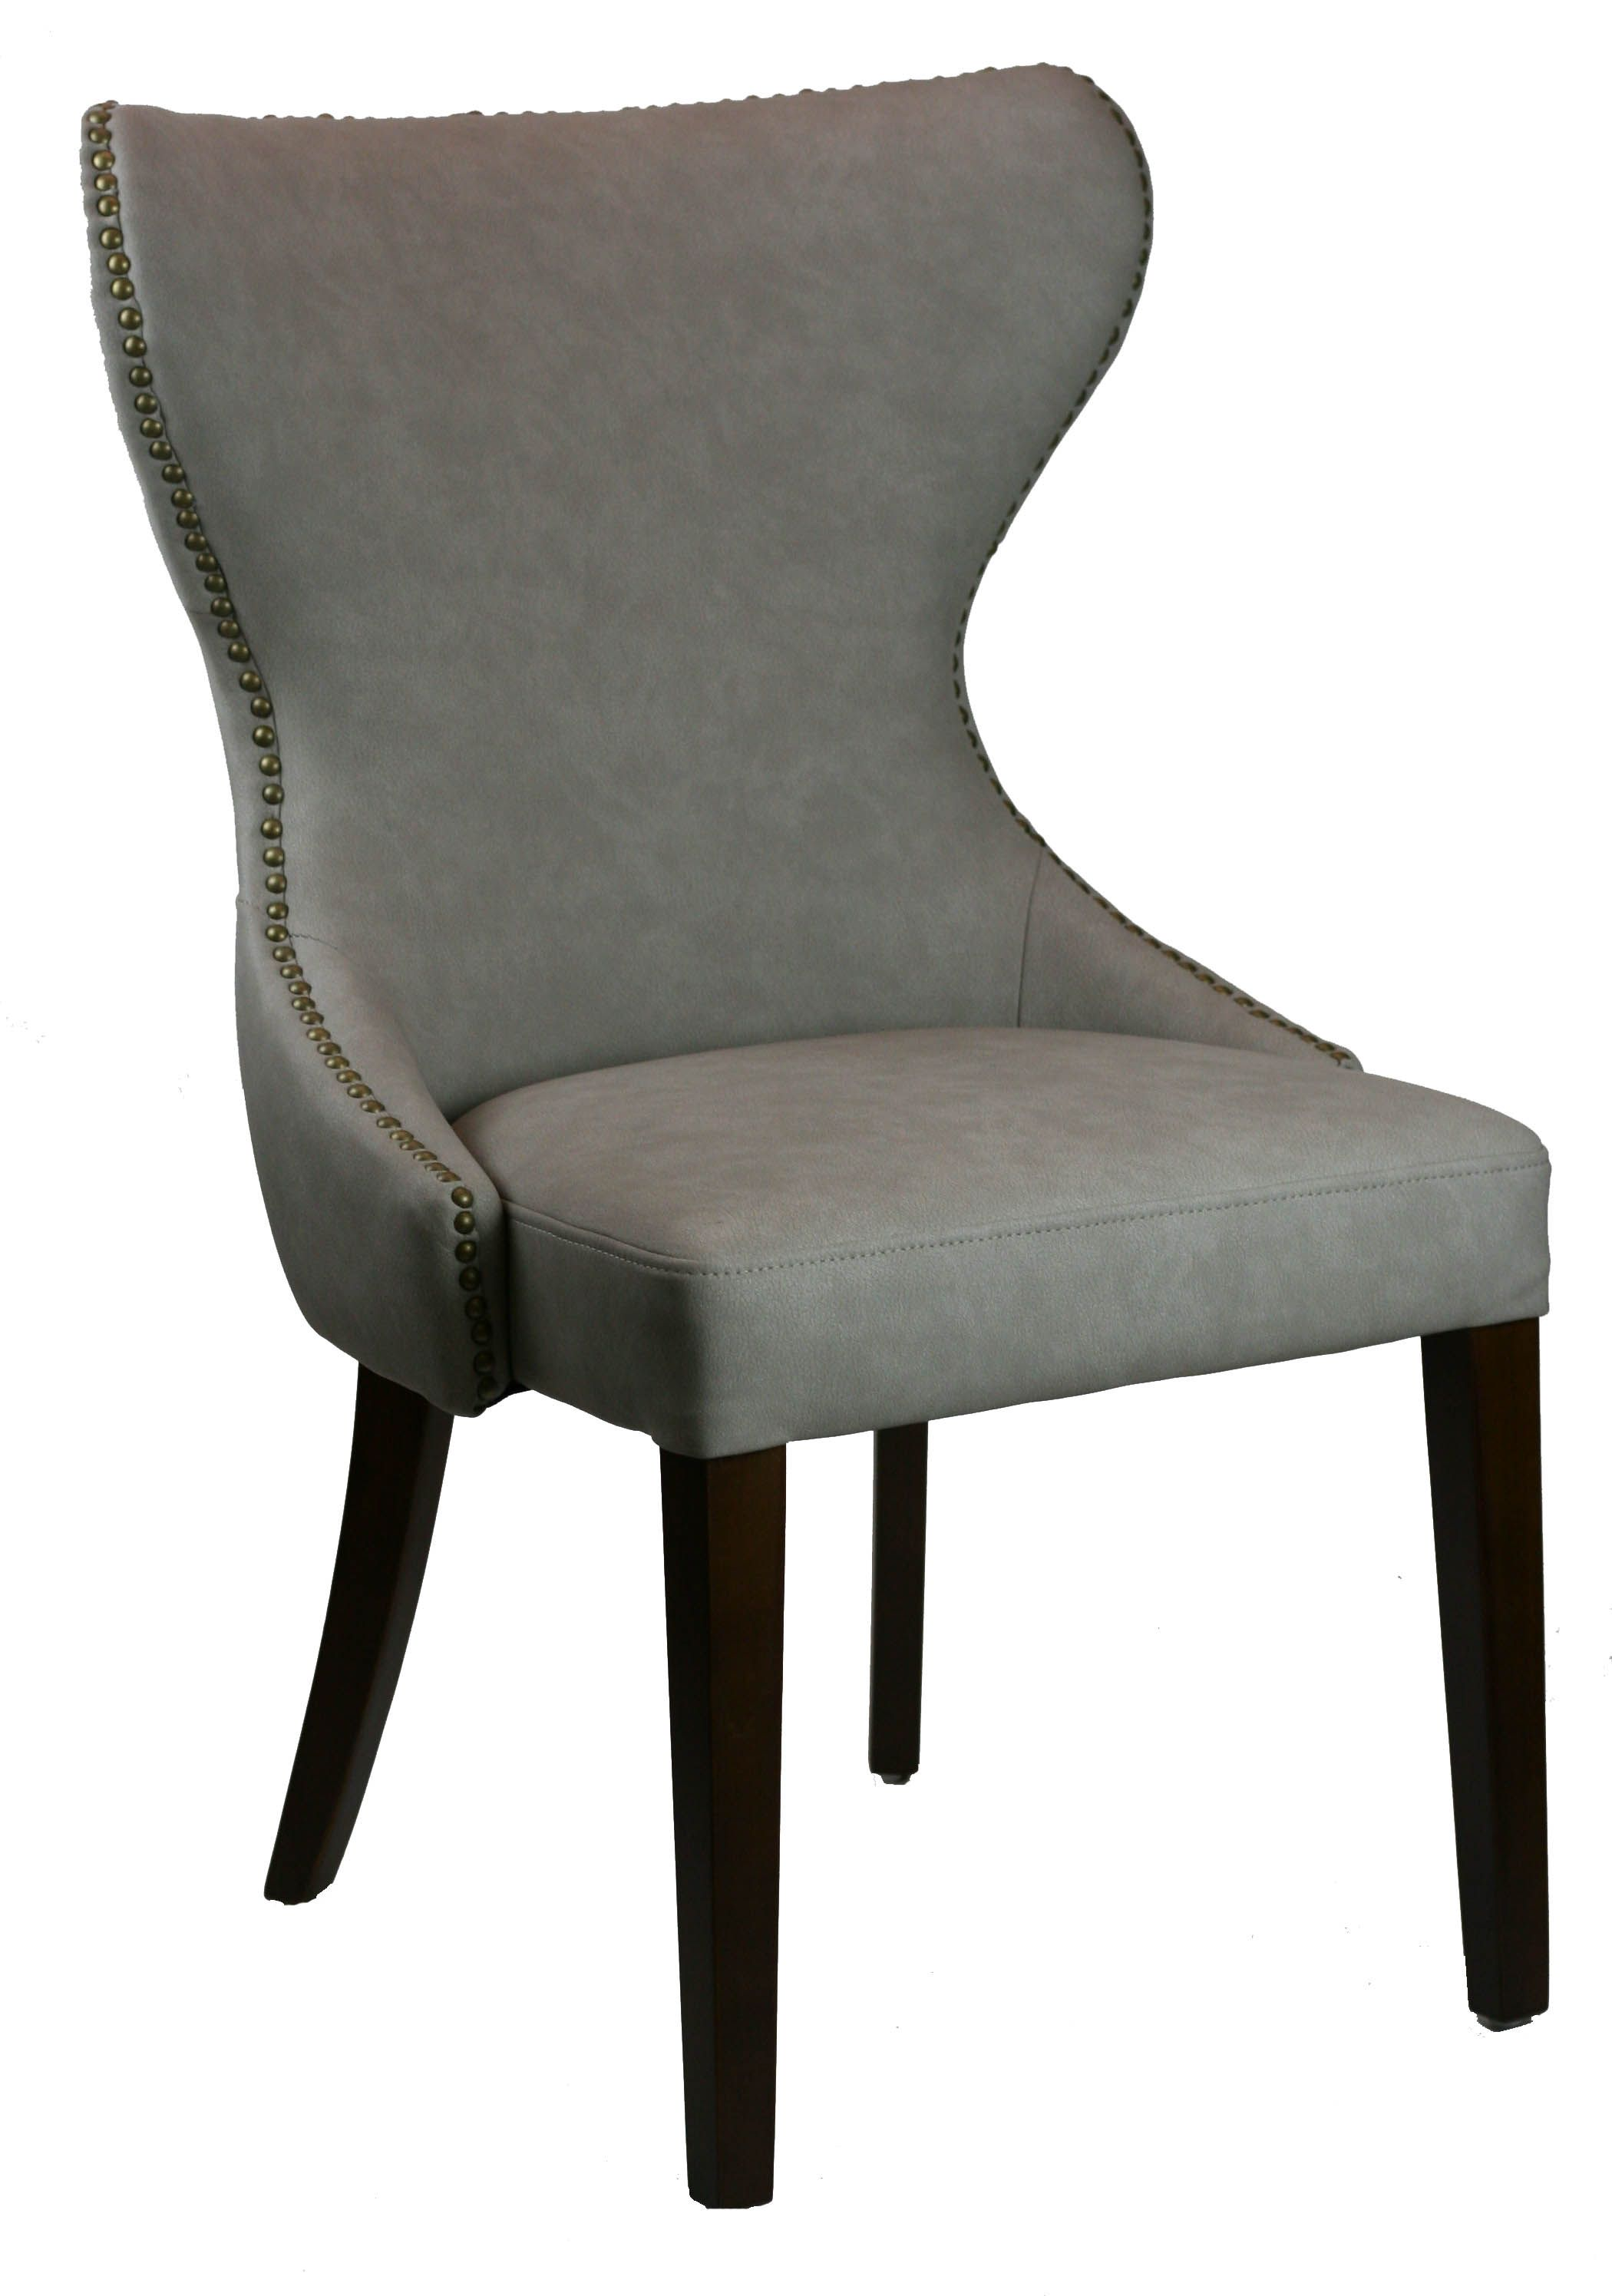 R 1232 Tufted Back Leather Dining Chair In Light Grey W Antique